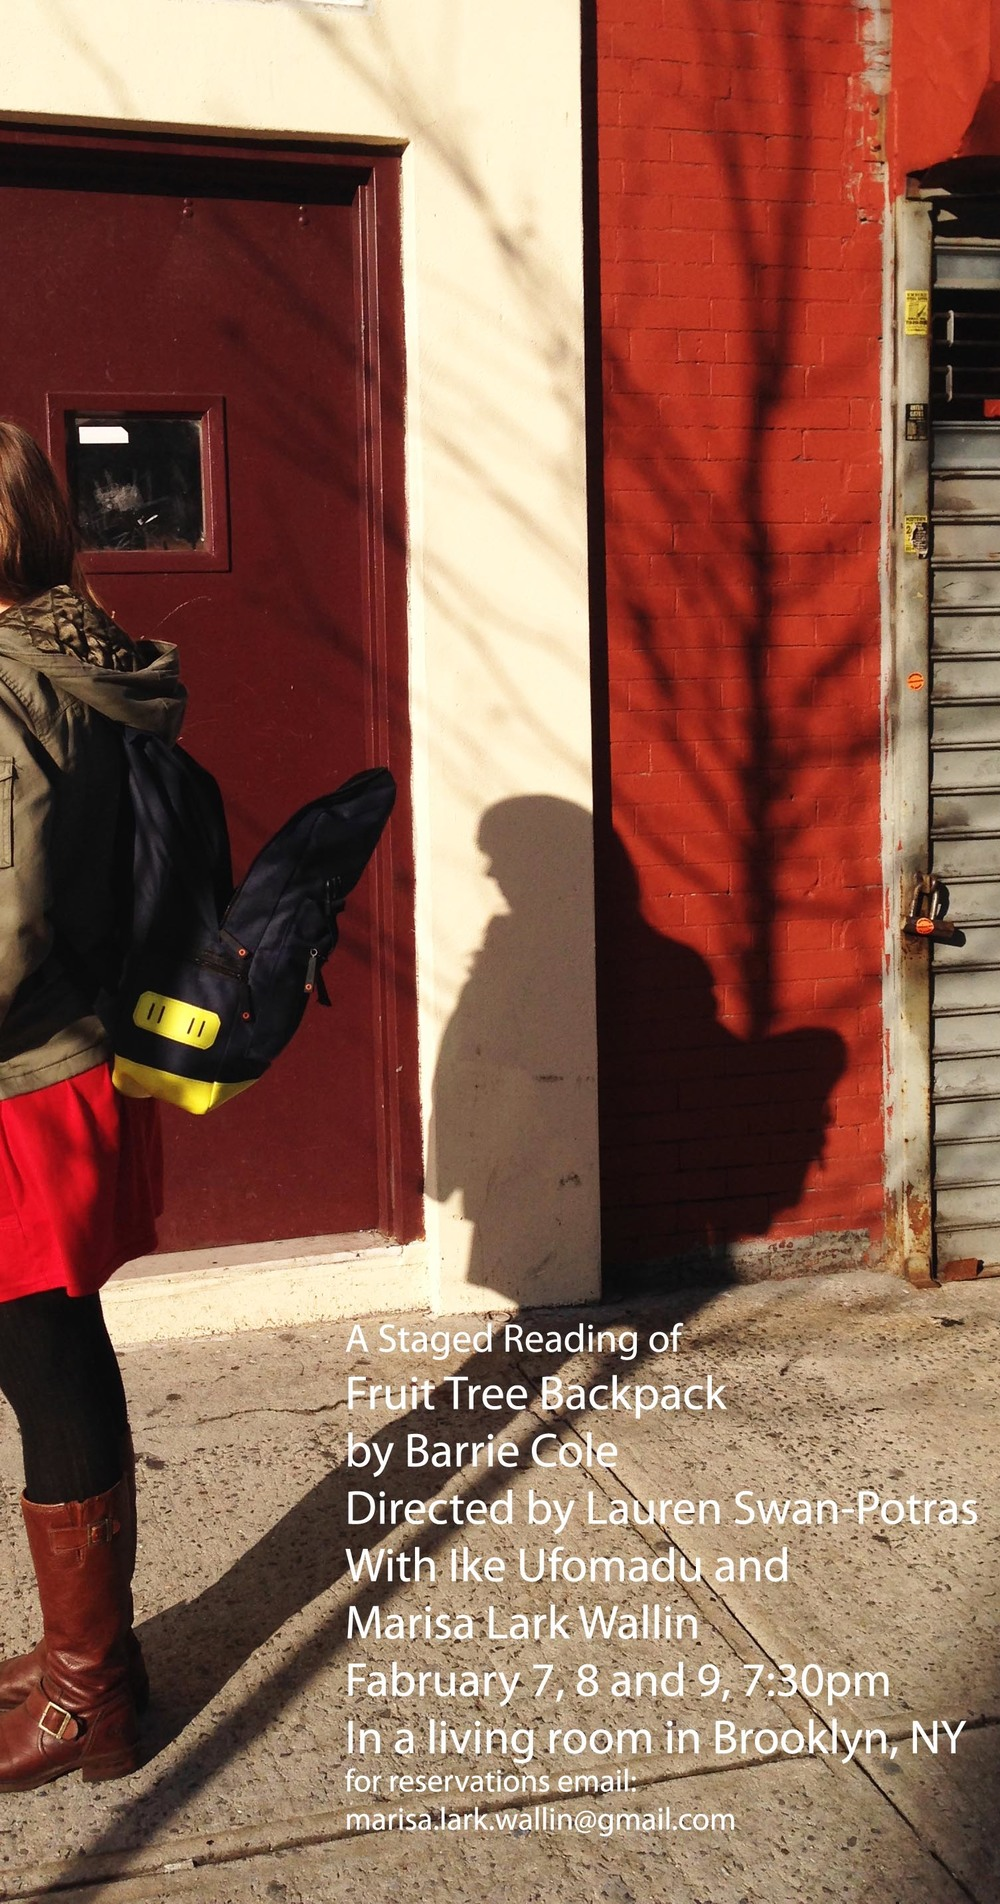 Fruit Tree Backpack copy.jpg